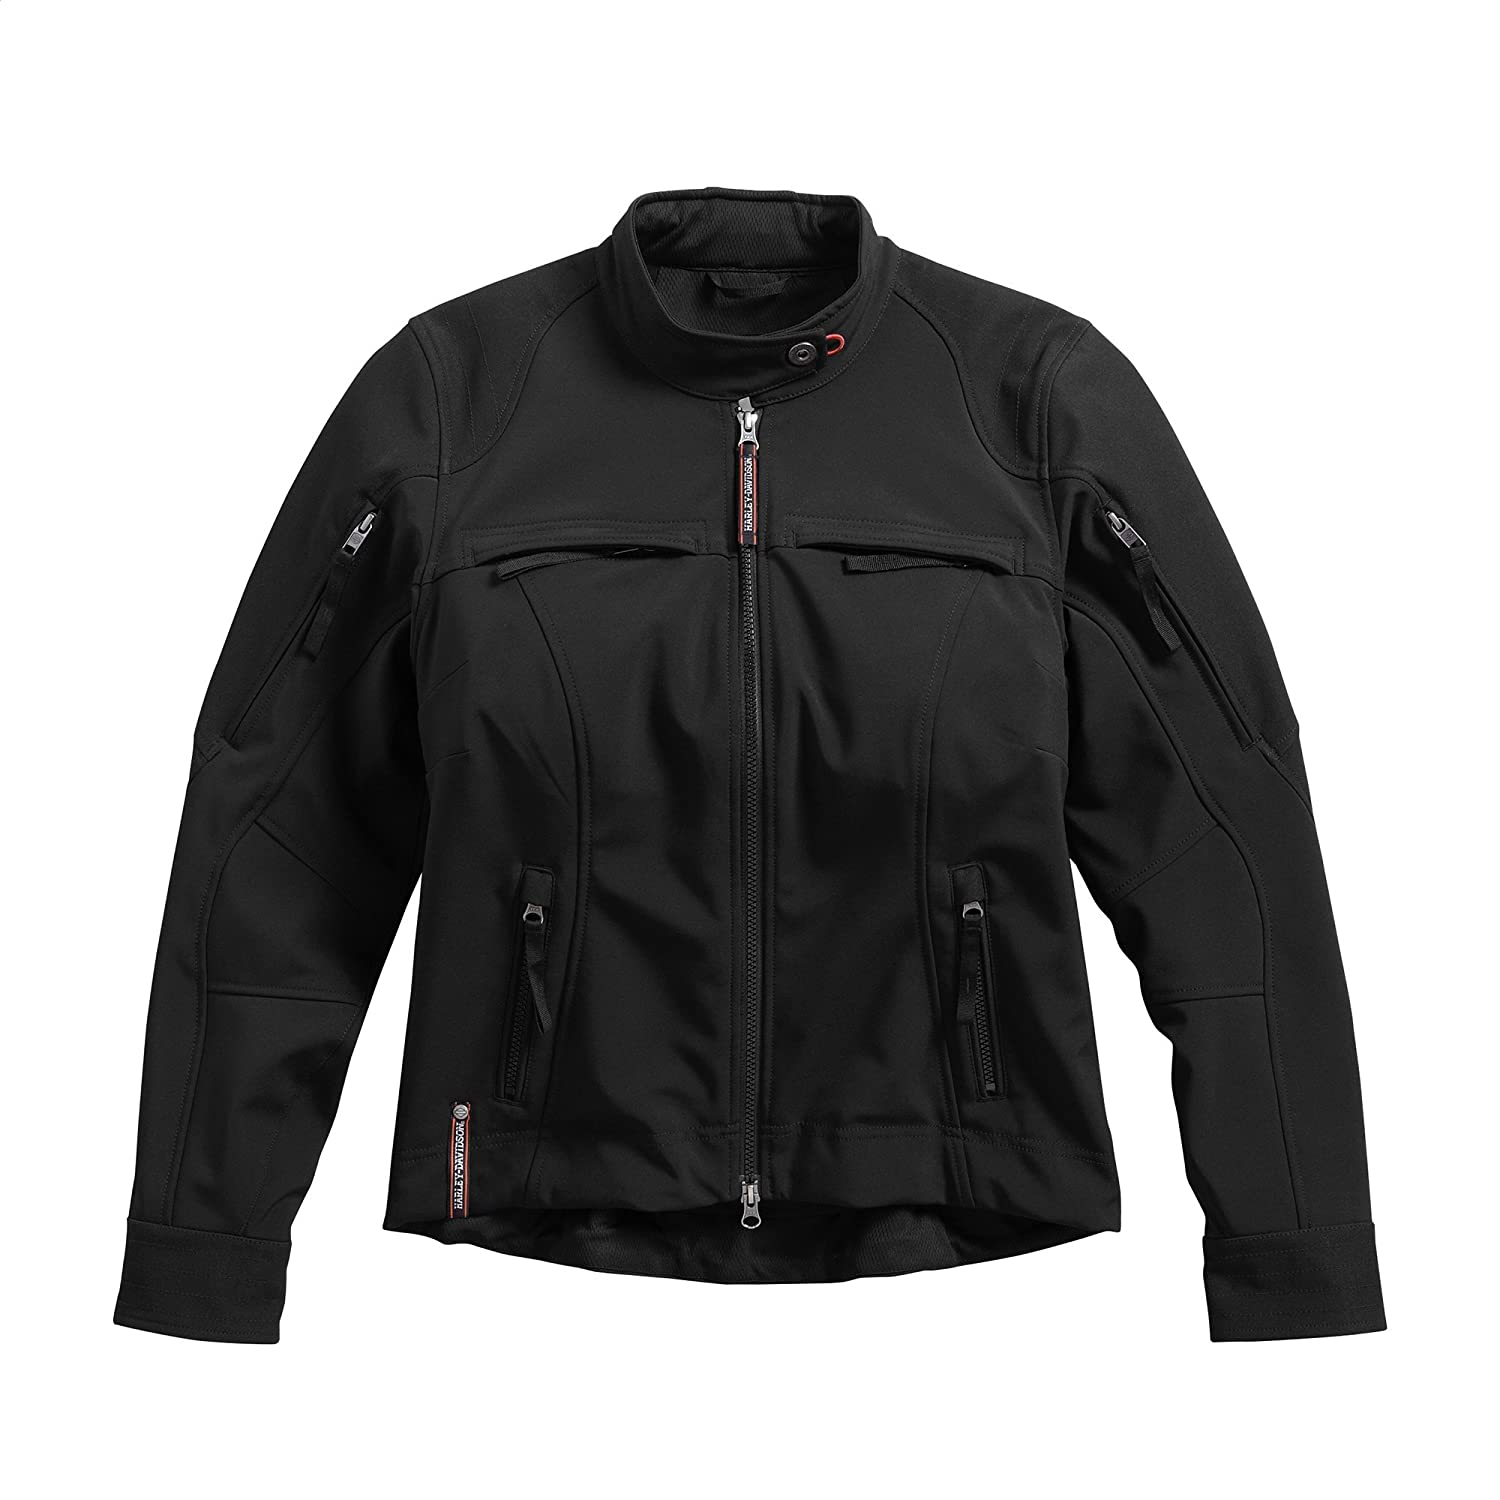 Harley-Davidson Official Women\'s Esteem Soft Shell Riding Jacket, Black (Medium) Harley-Davidson Motor Company Inc.